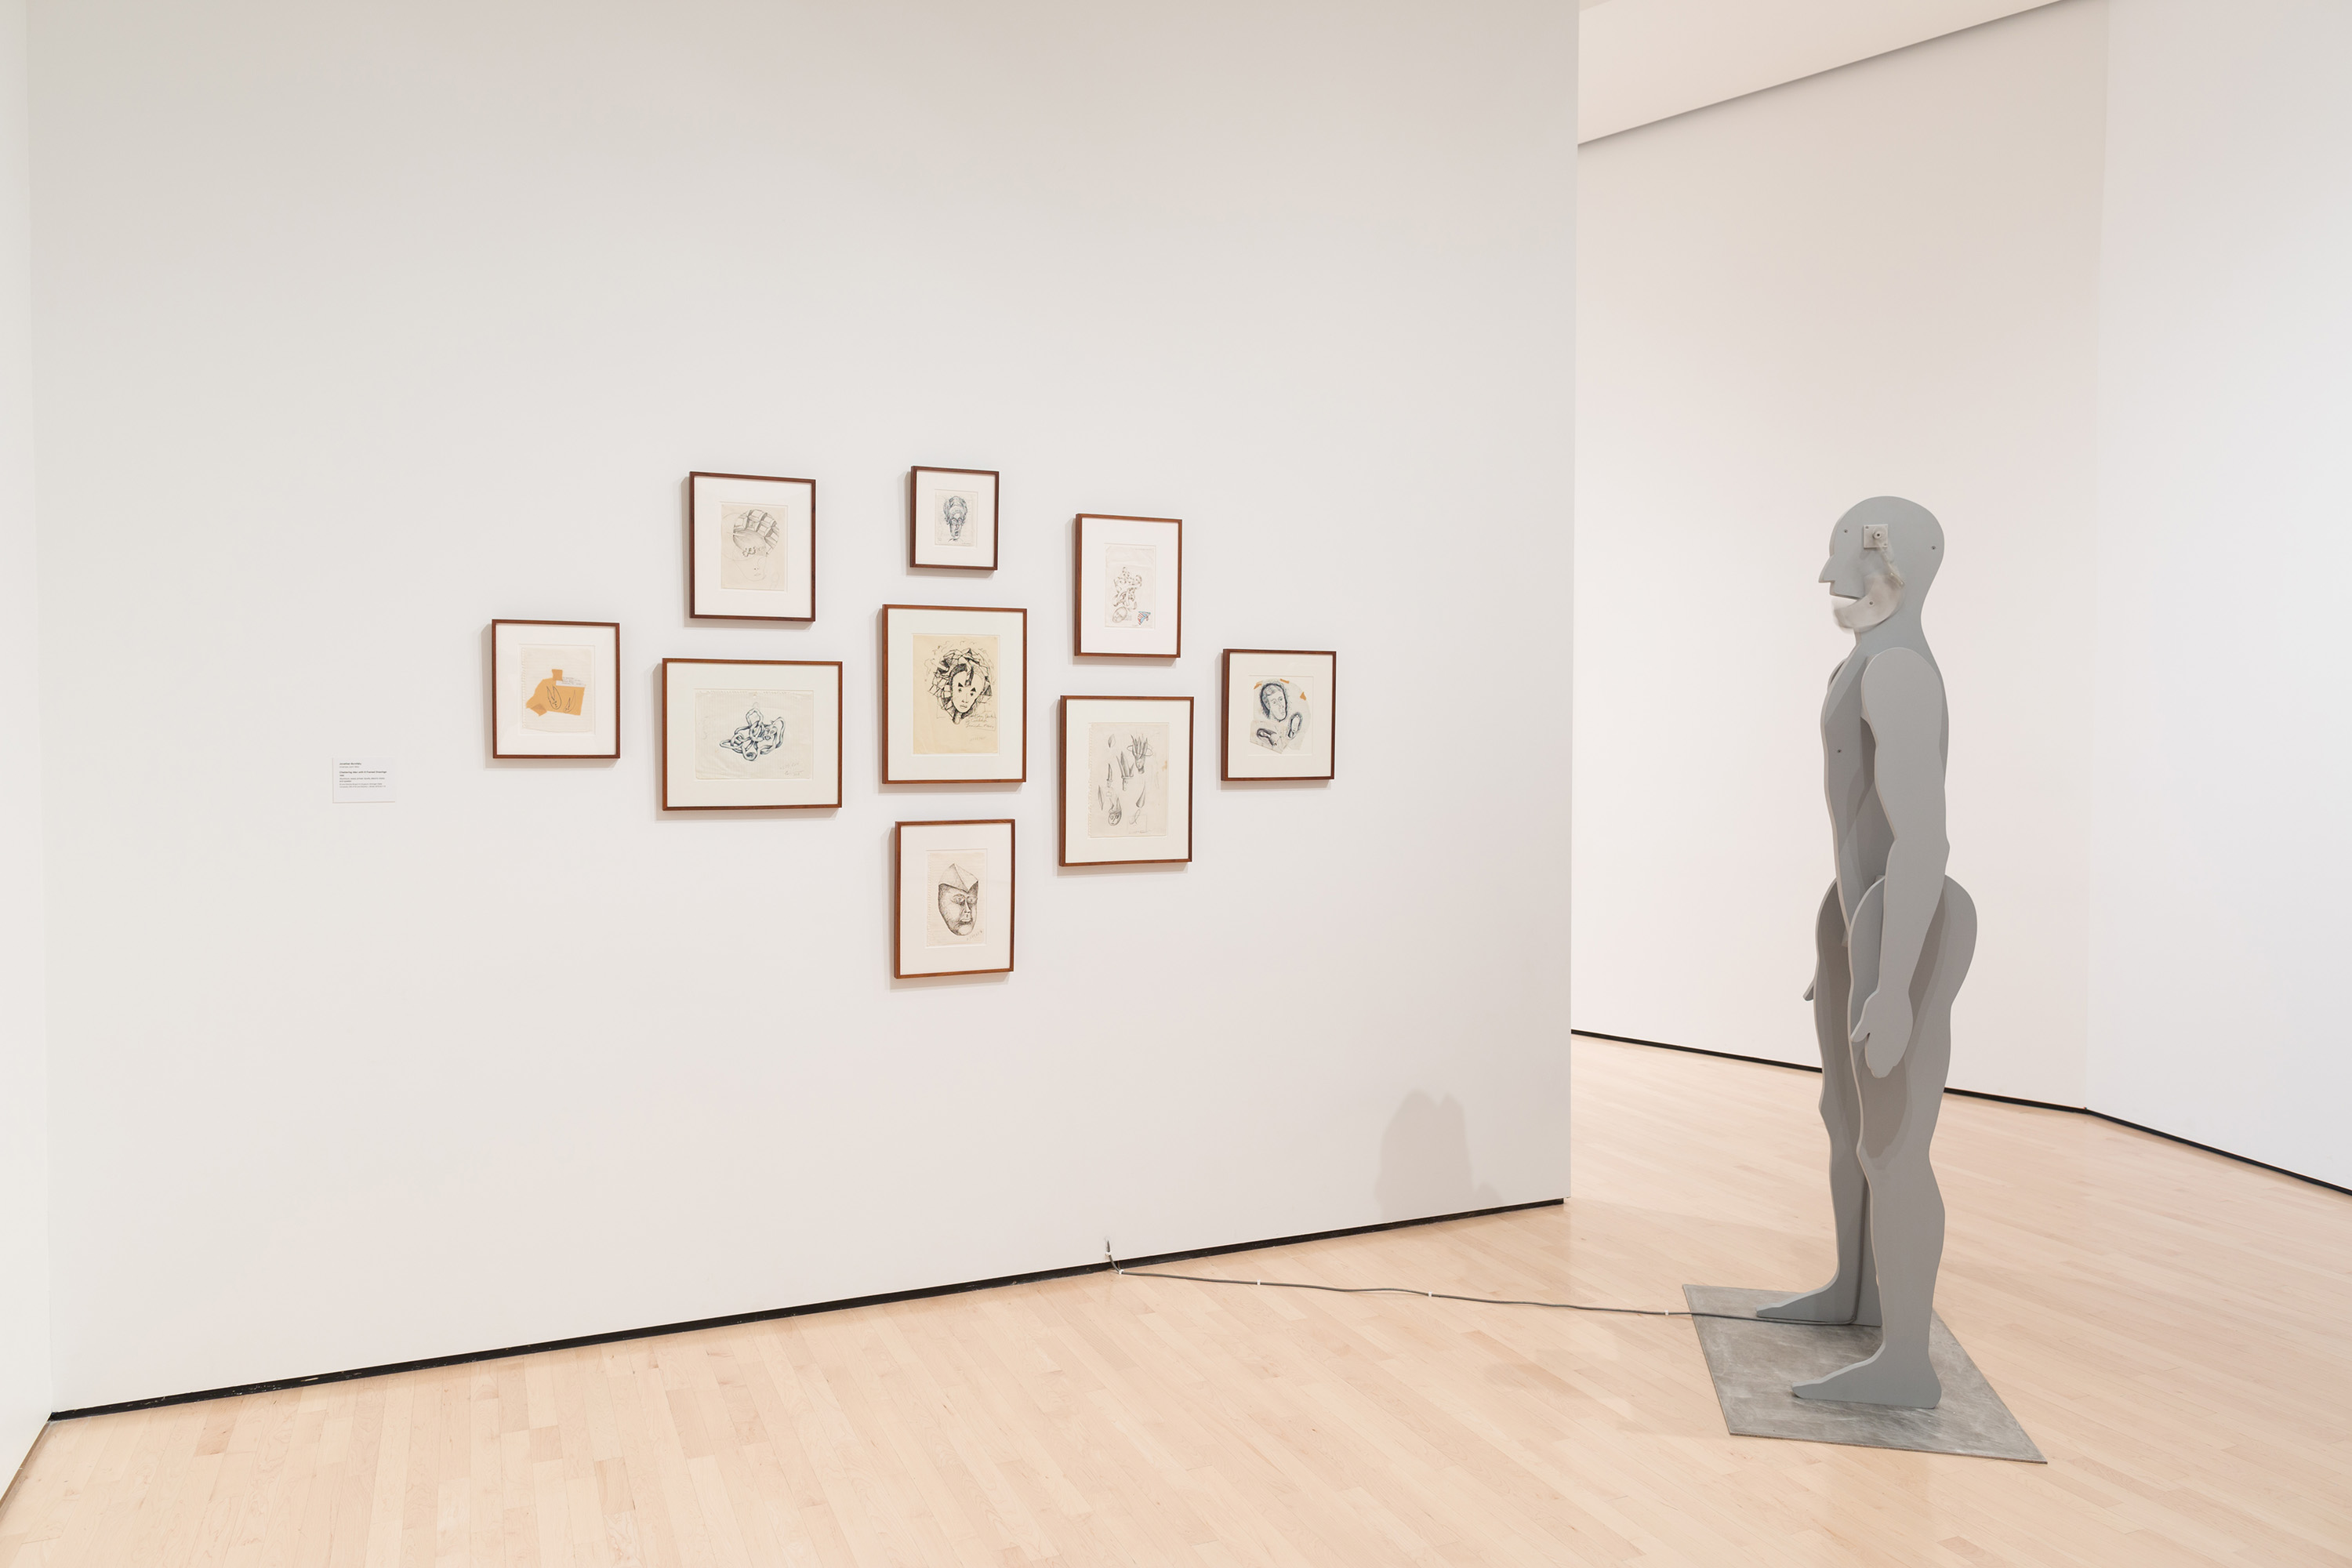 Jonathan Borofsky, <i>Chattering Man with 9 Framed Drawings</i>, 1986, installation view at the Eli and Edythe Broad Art Museum at Michigan State University, 2015. Gift of Eli and Edythe Broad. Photo: Eat Pomegranate Photography